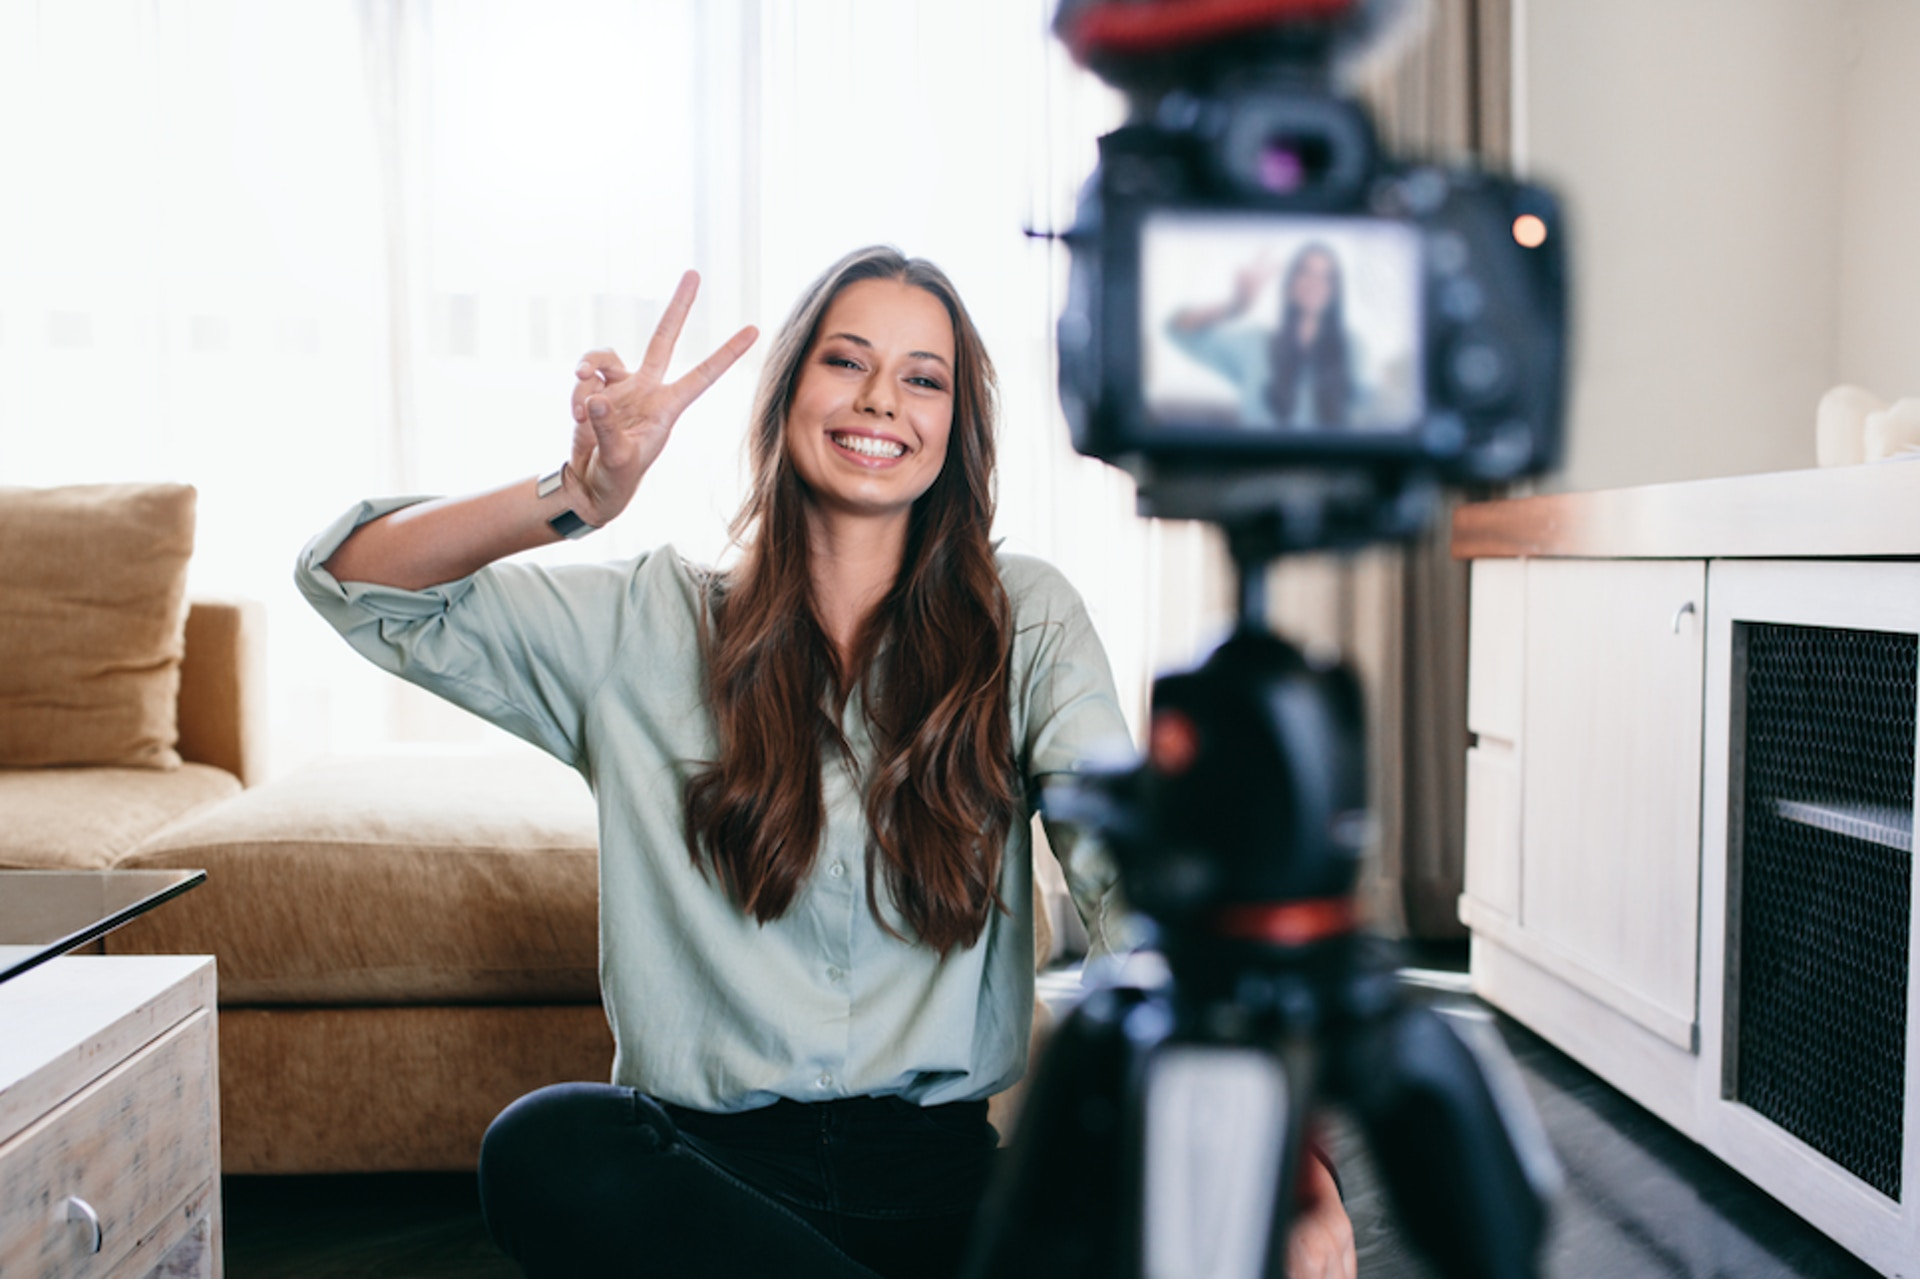 eng-03035Quick Tips for Social Video